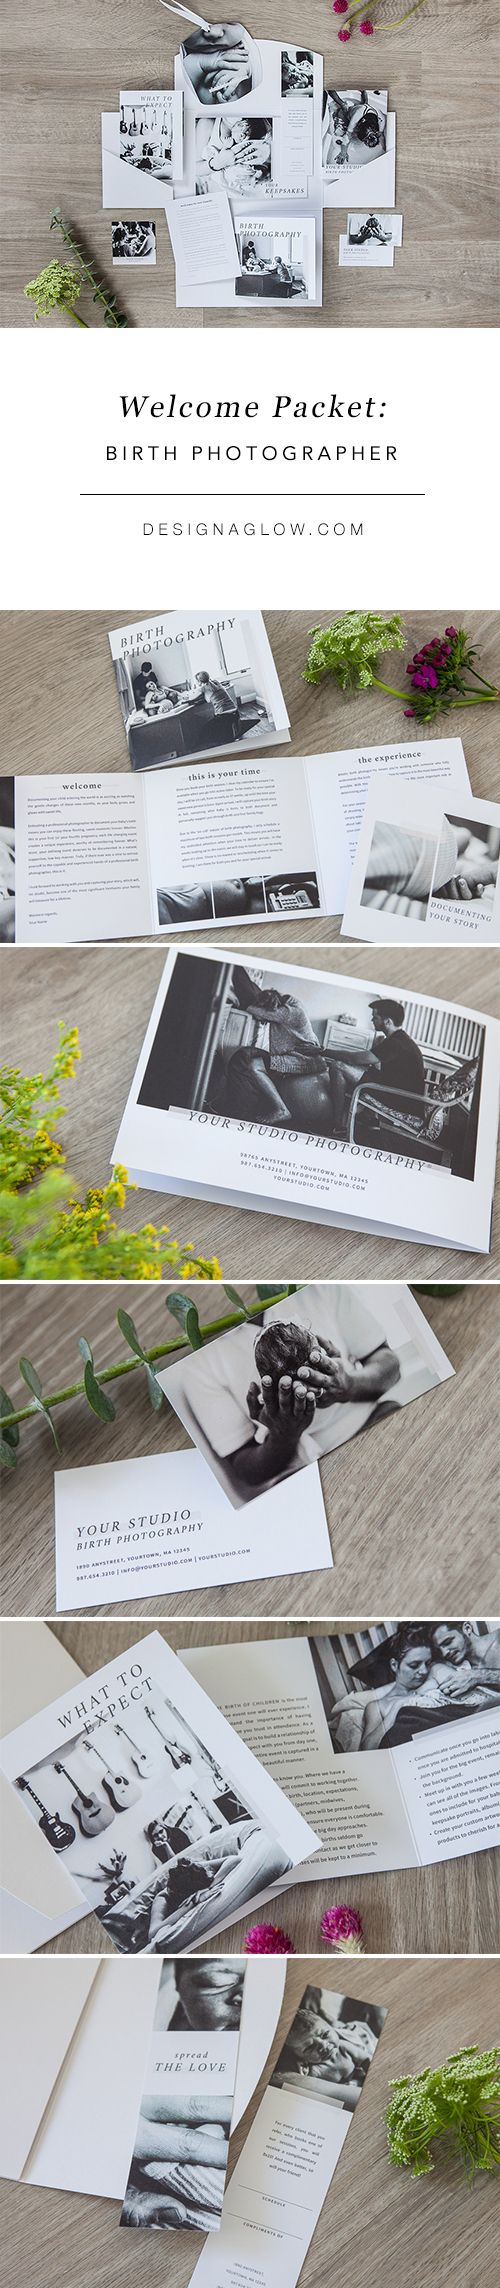 Photography Welcome Packet for Birth Photographers by Design Aglow